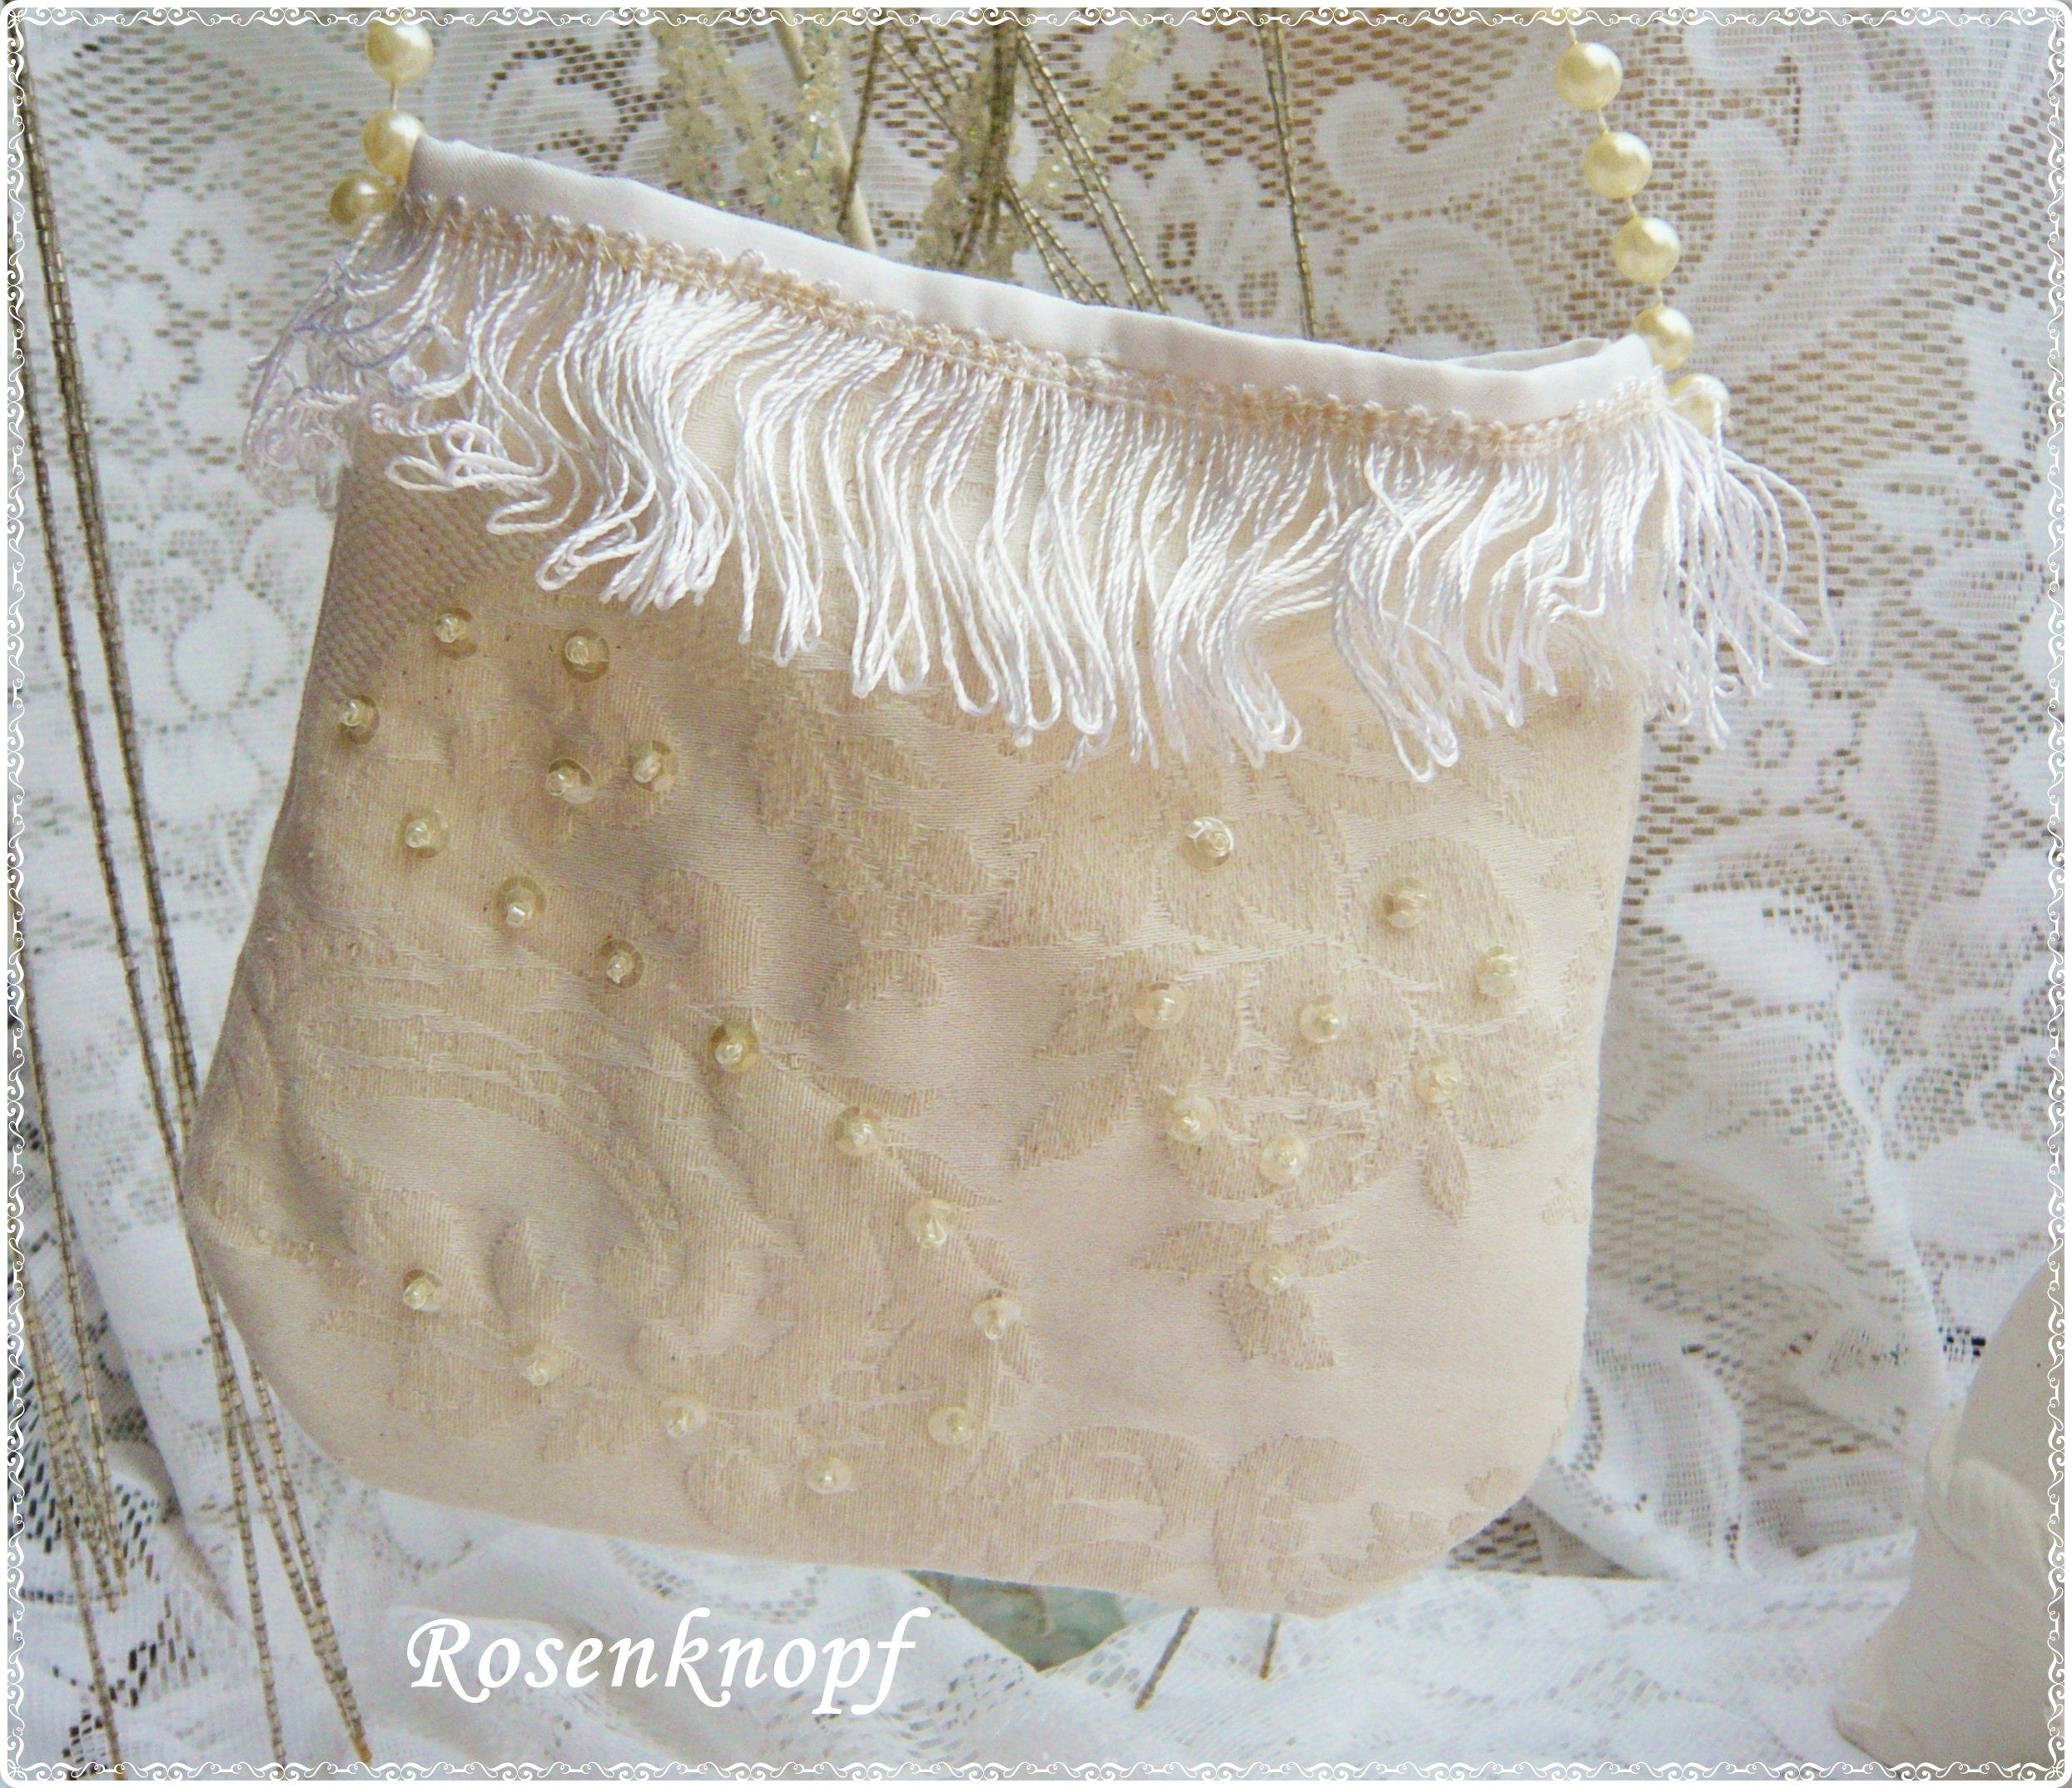 Tasche Bridal Bag Ivory Sequins Embroidery Handbag Women S Handbag Shoulder Bag Unikat Bride Women S Wedding Evening Bag Fringe Damenhandtaschen Brauttasche Abendtaschen